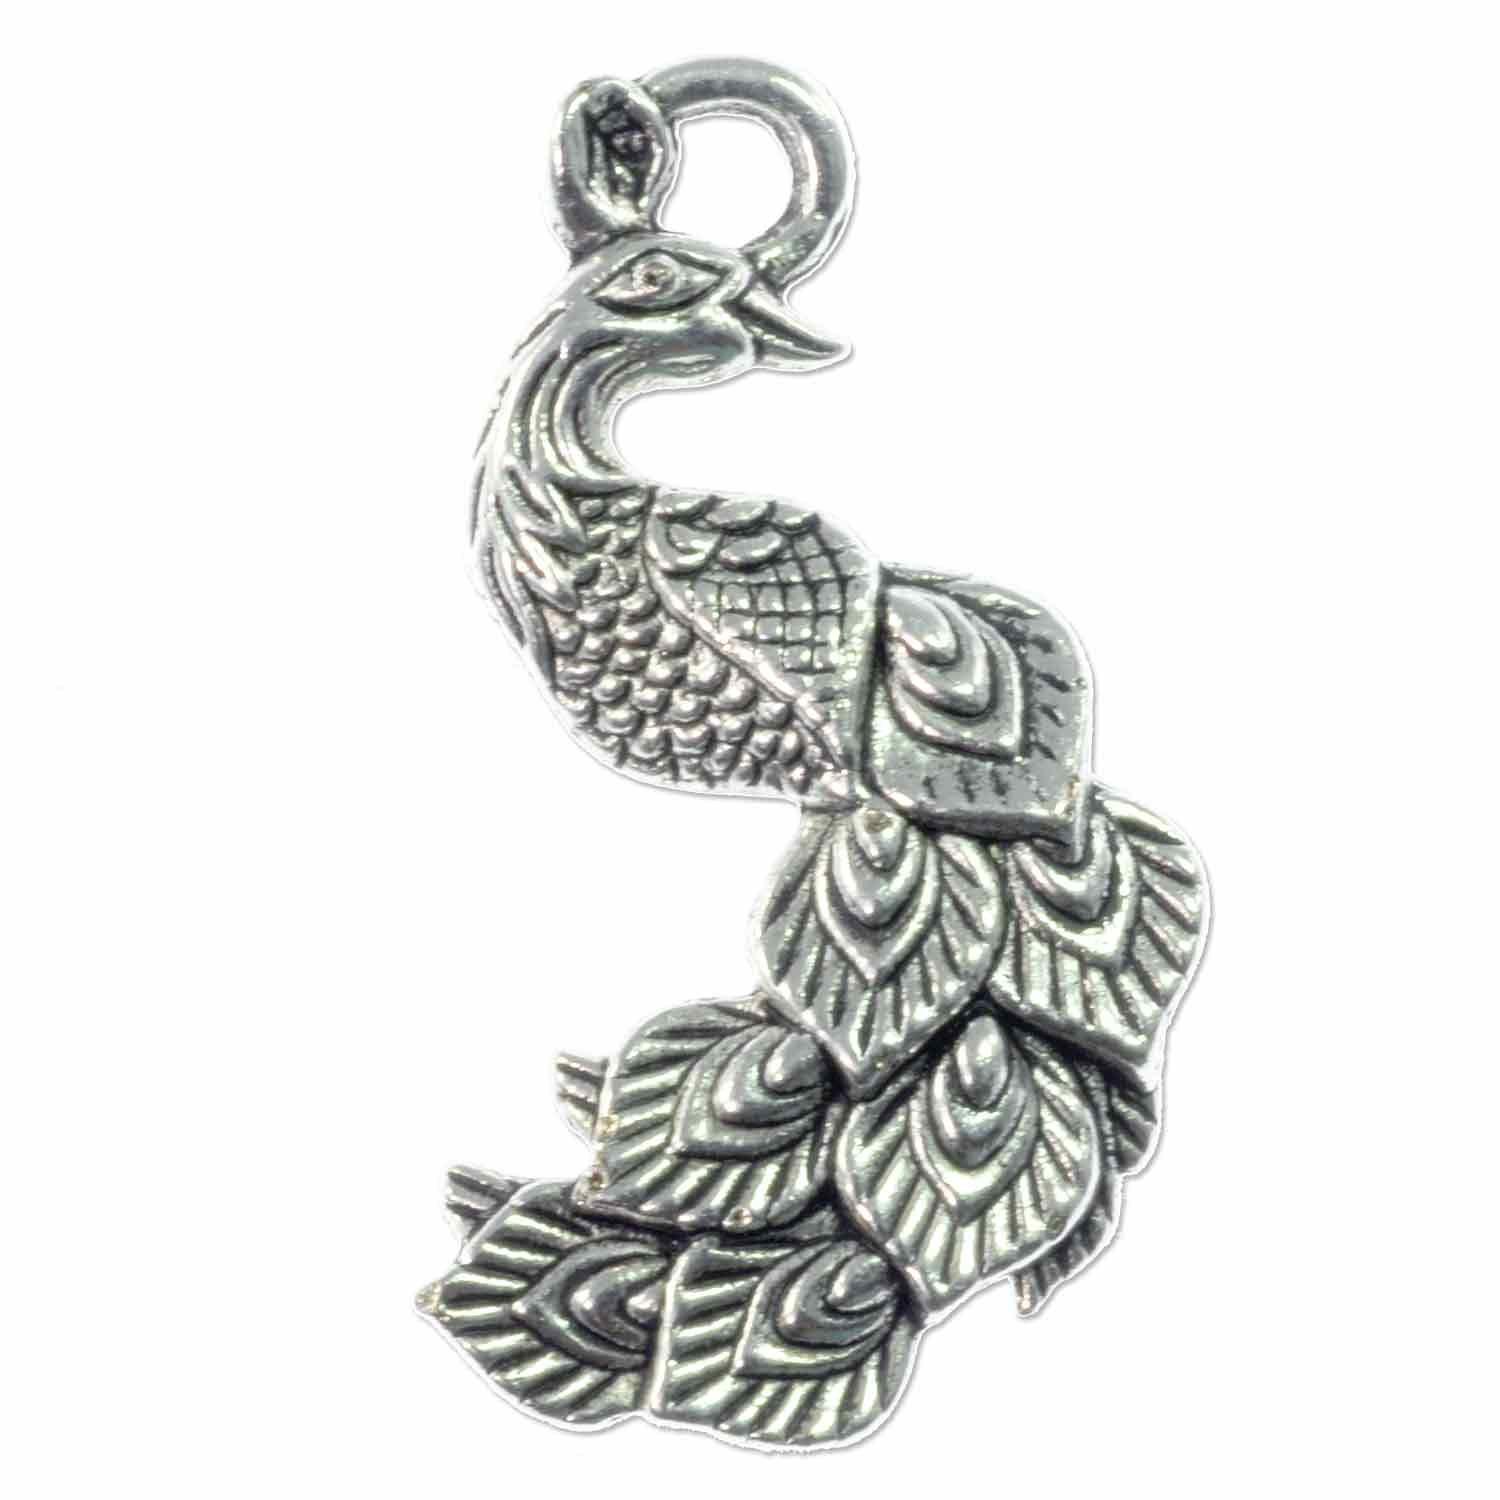 Peacock pendant 34x19mm pewter antique silver plated 1 pc aloadofball Choice Image